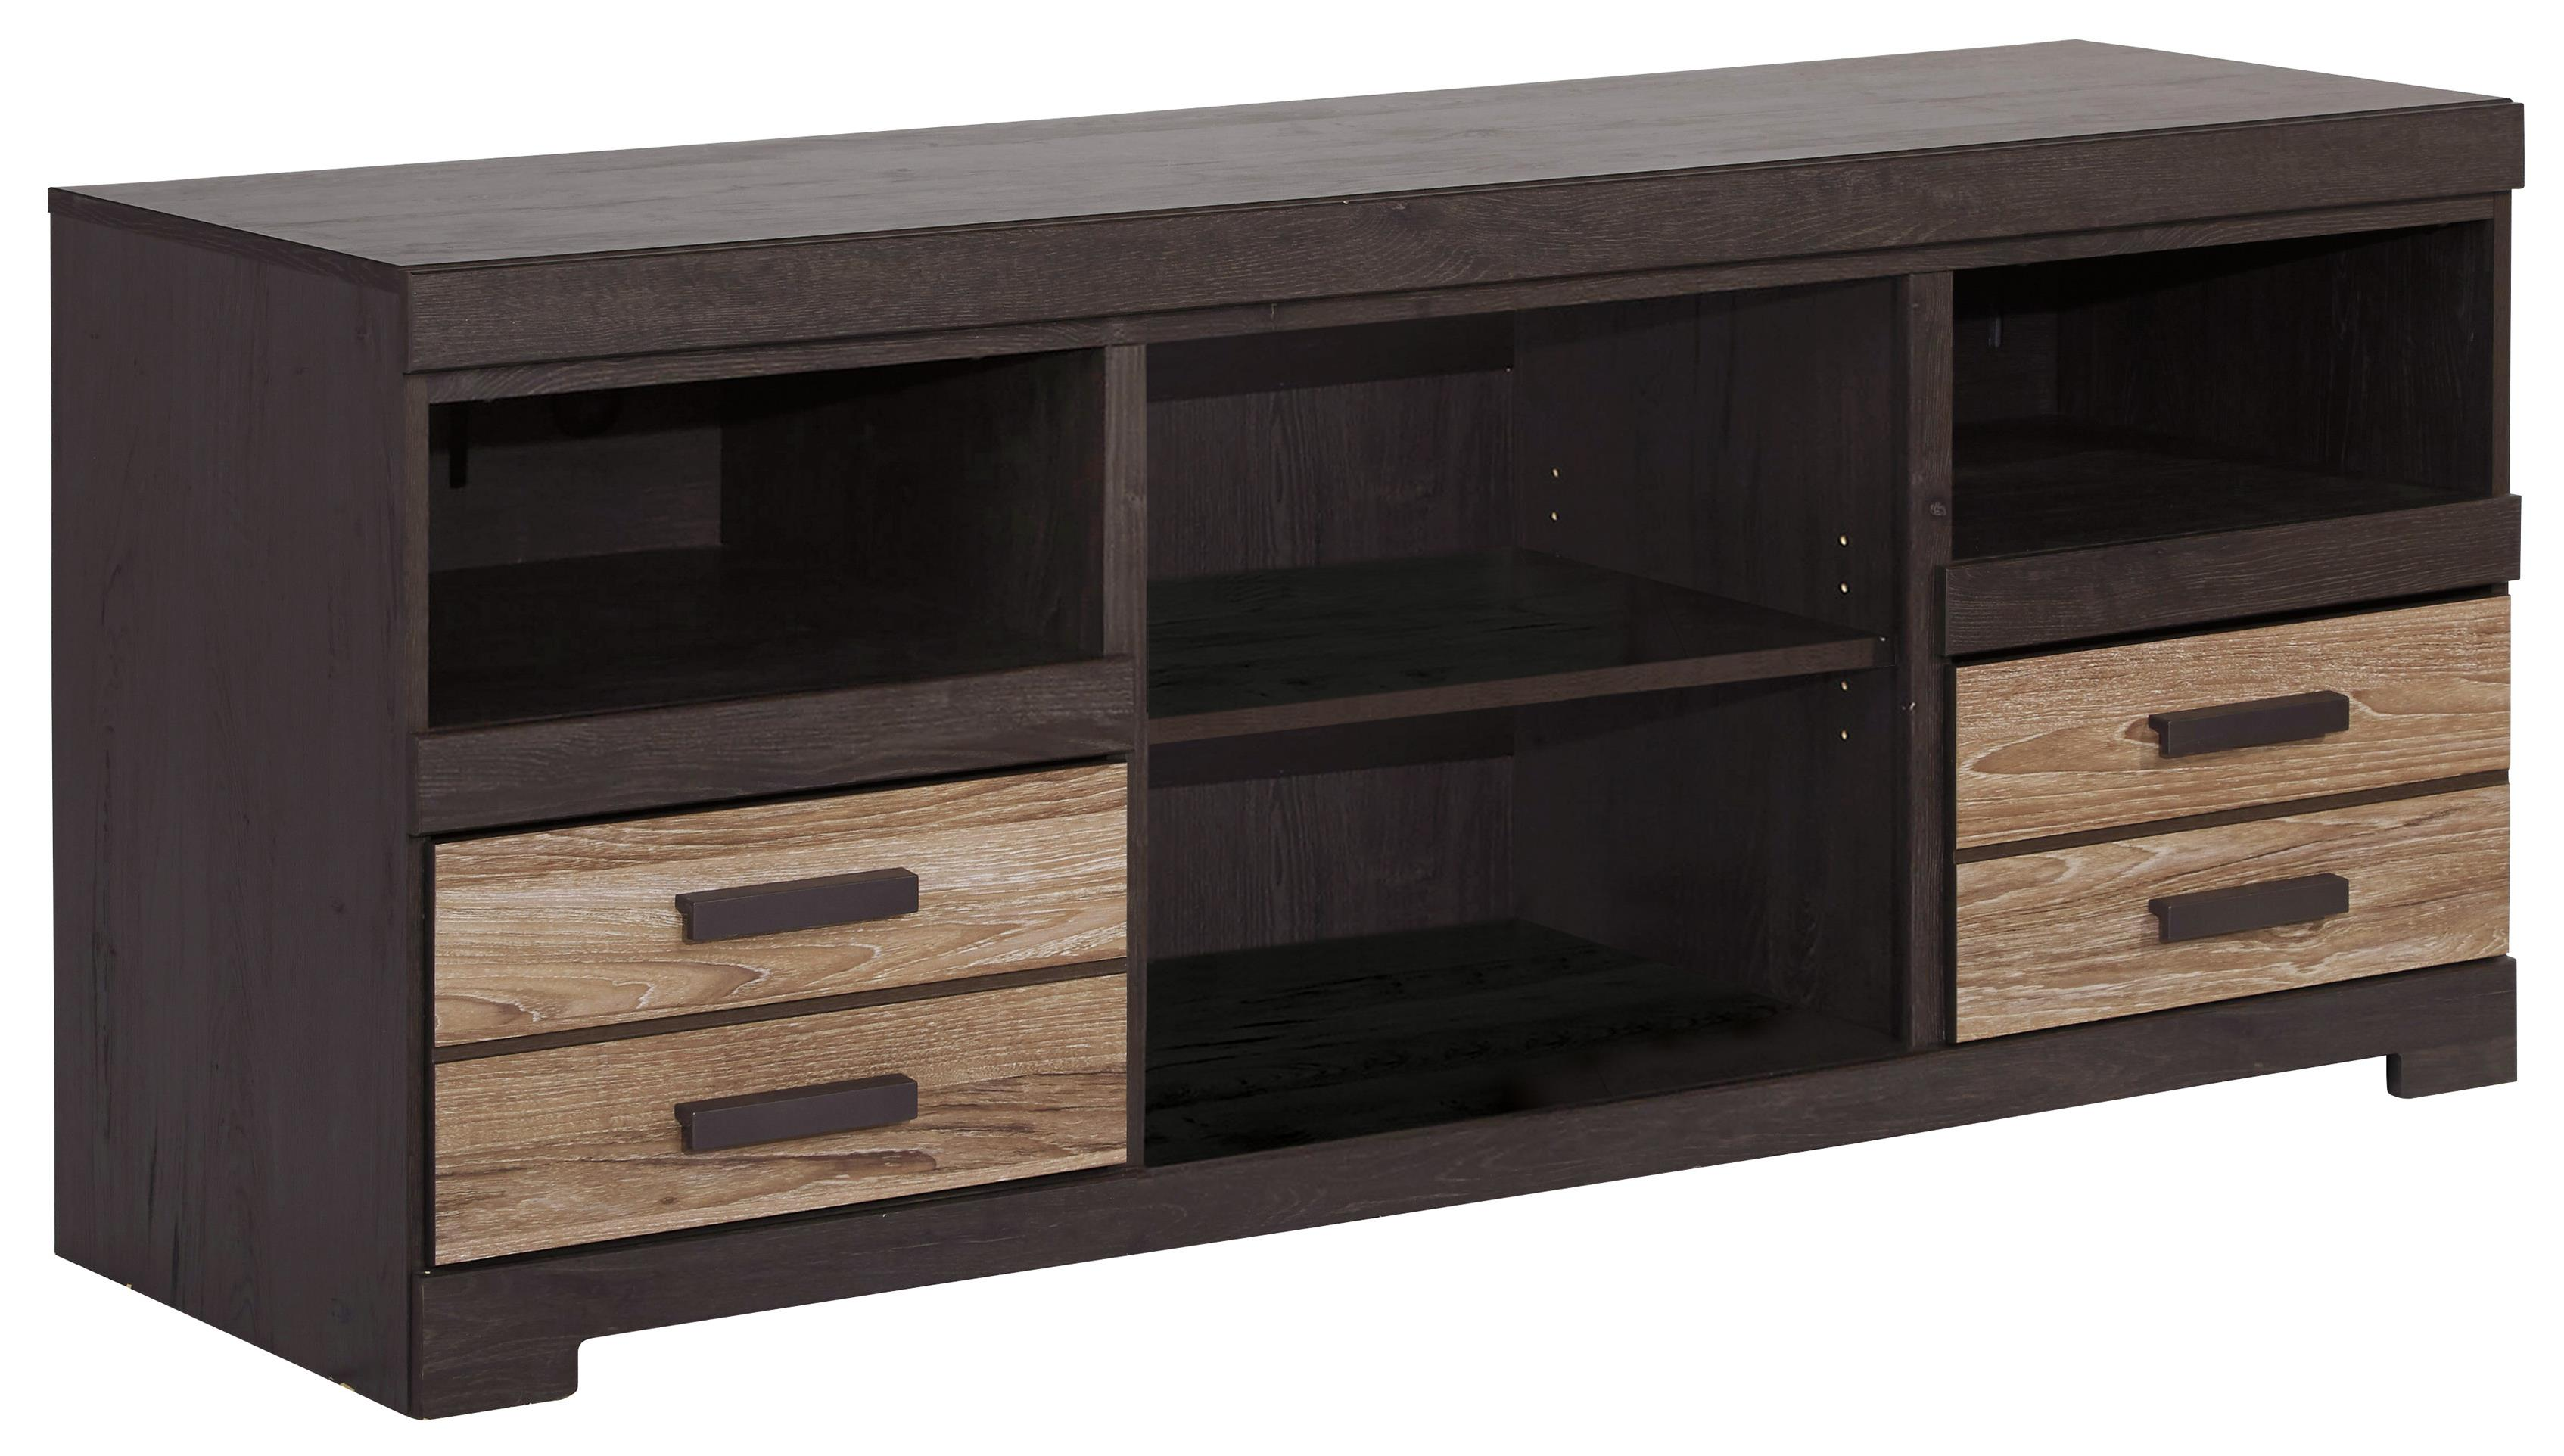 Signature Design by Ashley Harlinton Large TV Stand - Item Number: W325-68